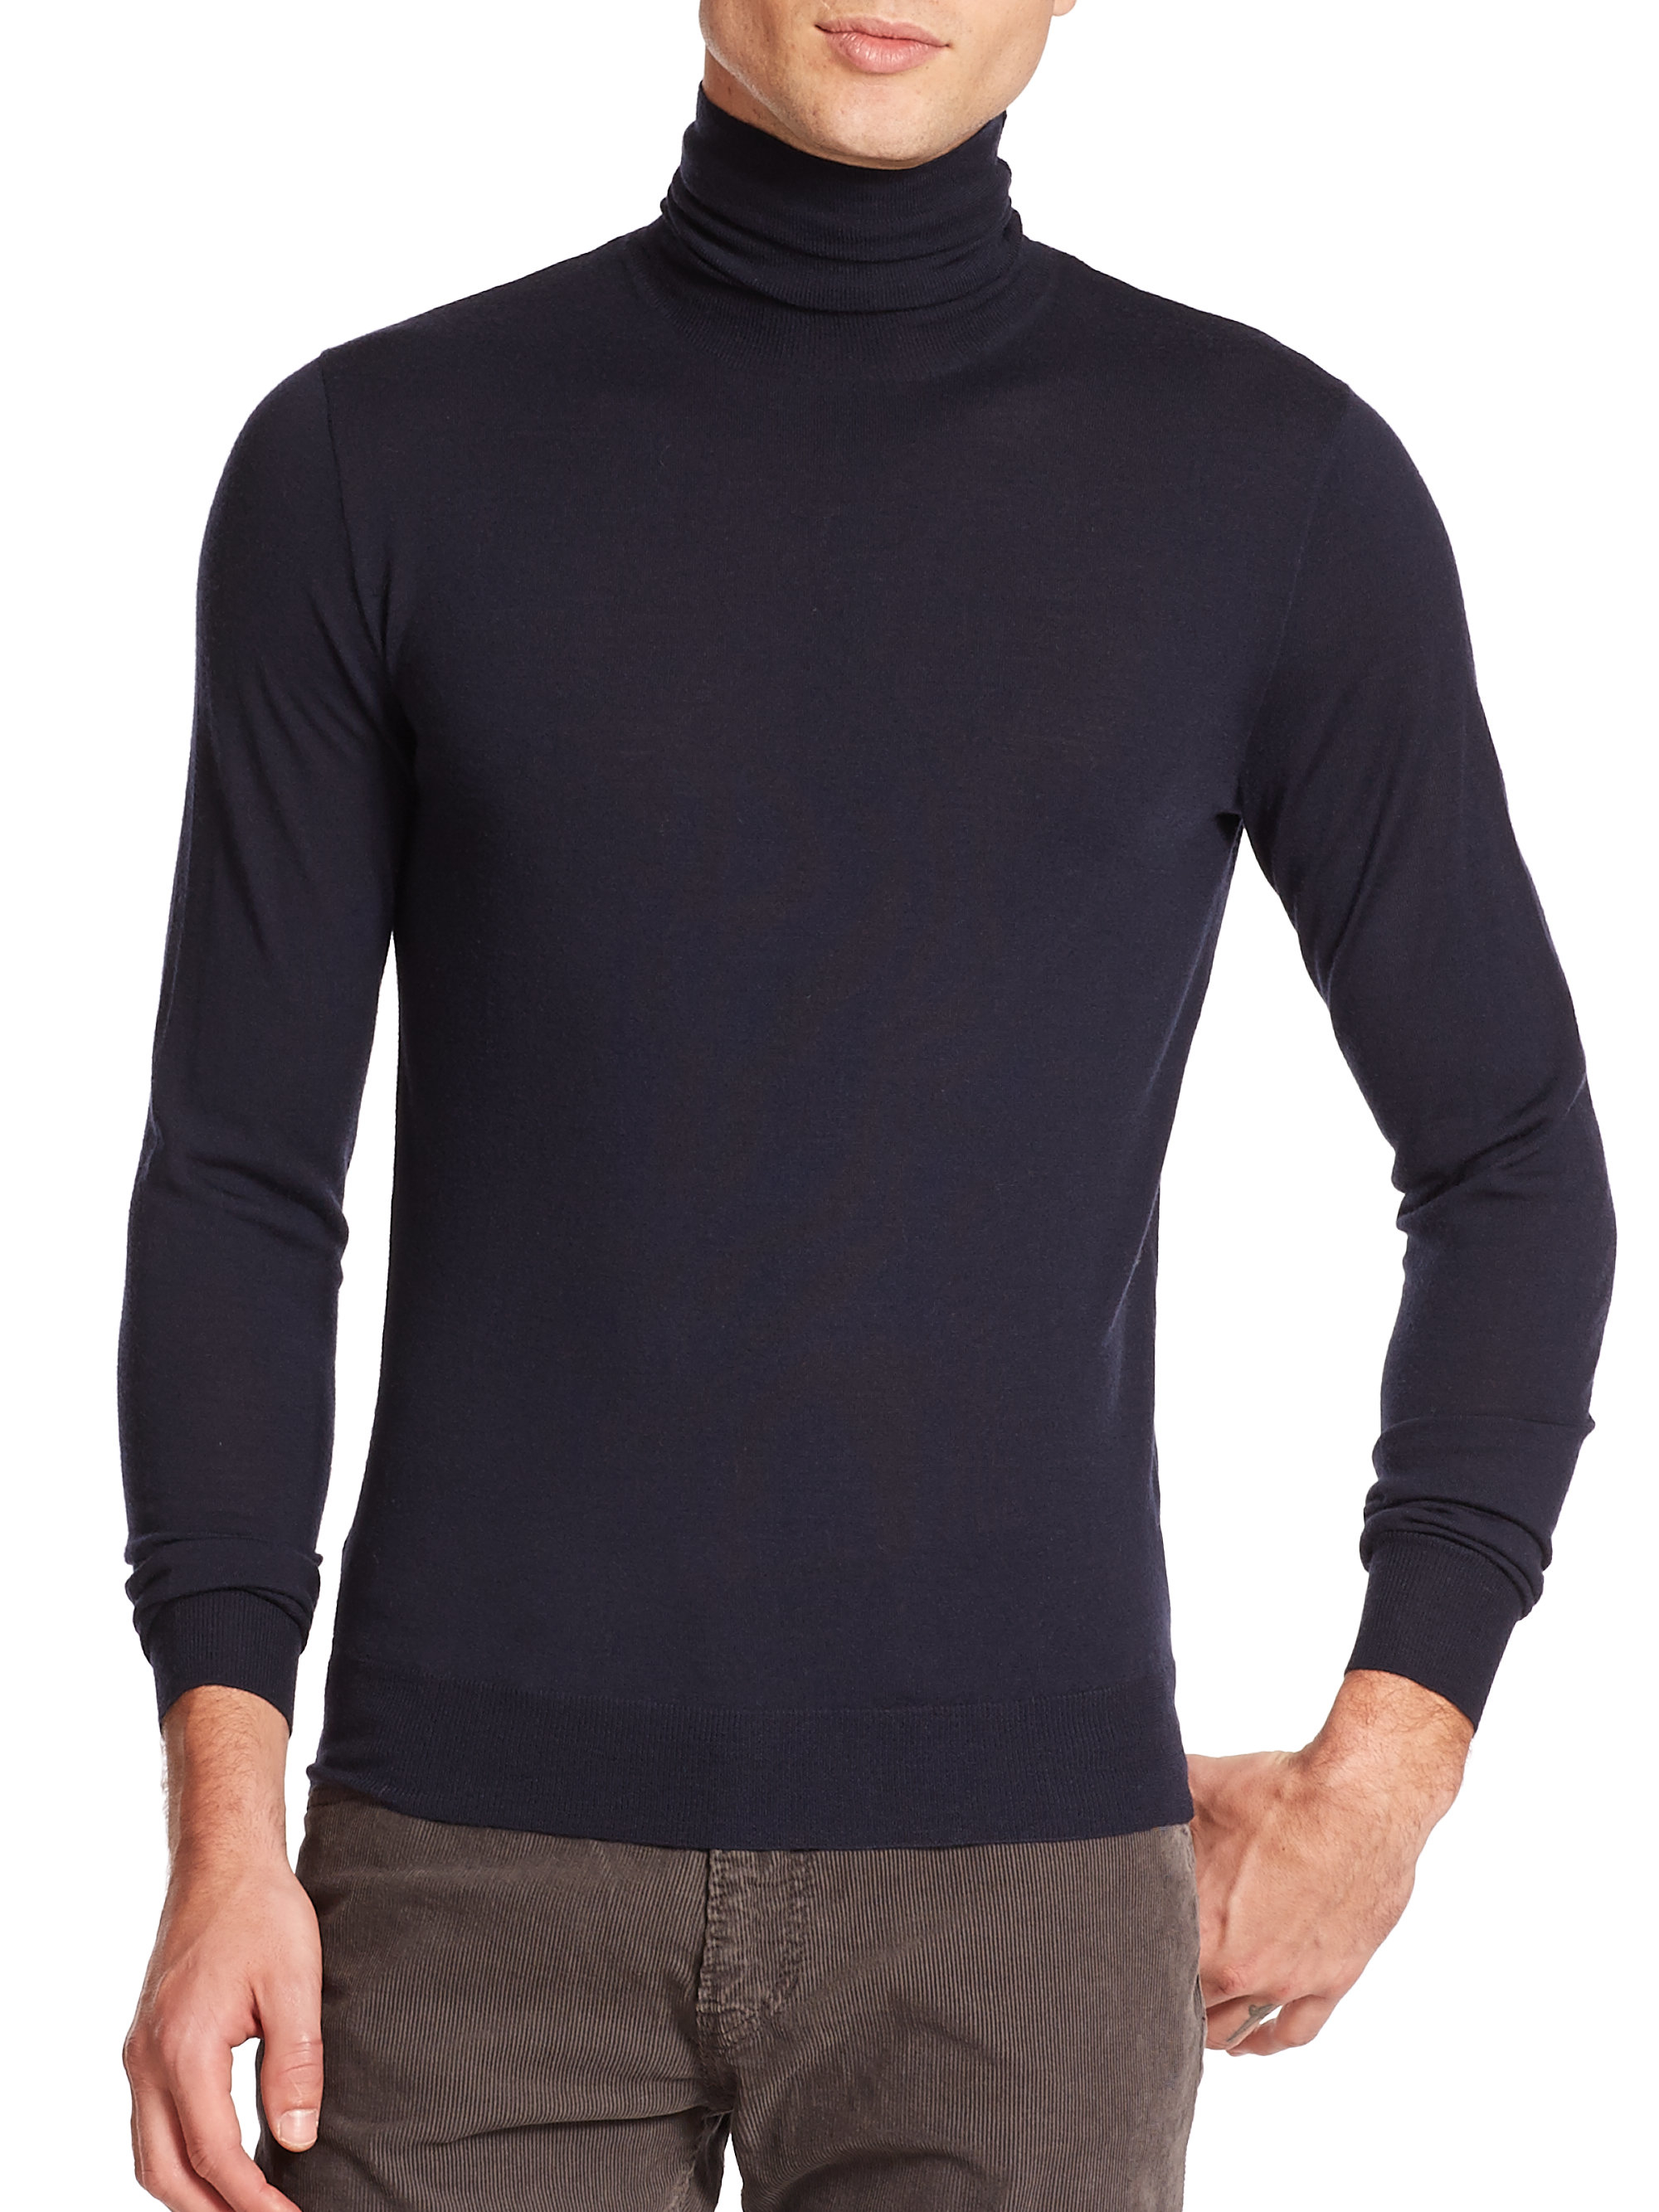 Shop women's sweaters at UNIQLO. Browse the selection of casmere, merino wool,and cotton sweates in a variety of styles like V-neck, turtleneck, cardigans and crew neck. UNIQLO US.